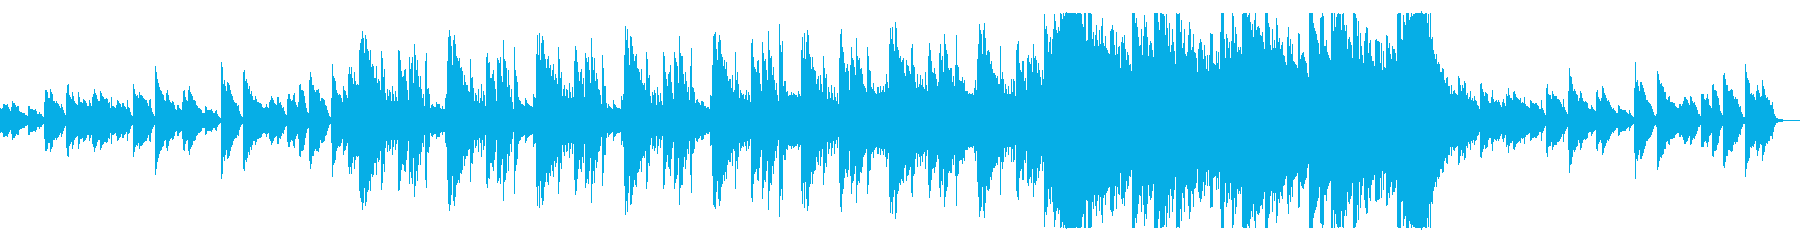 Emo ballad to color with painful piano's reproduced waveform